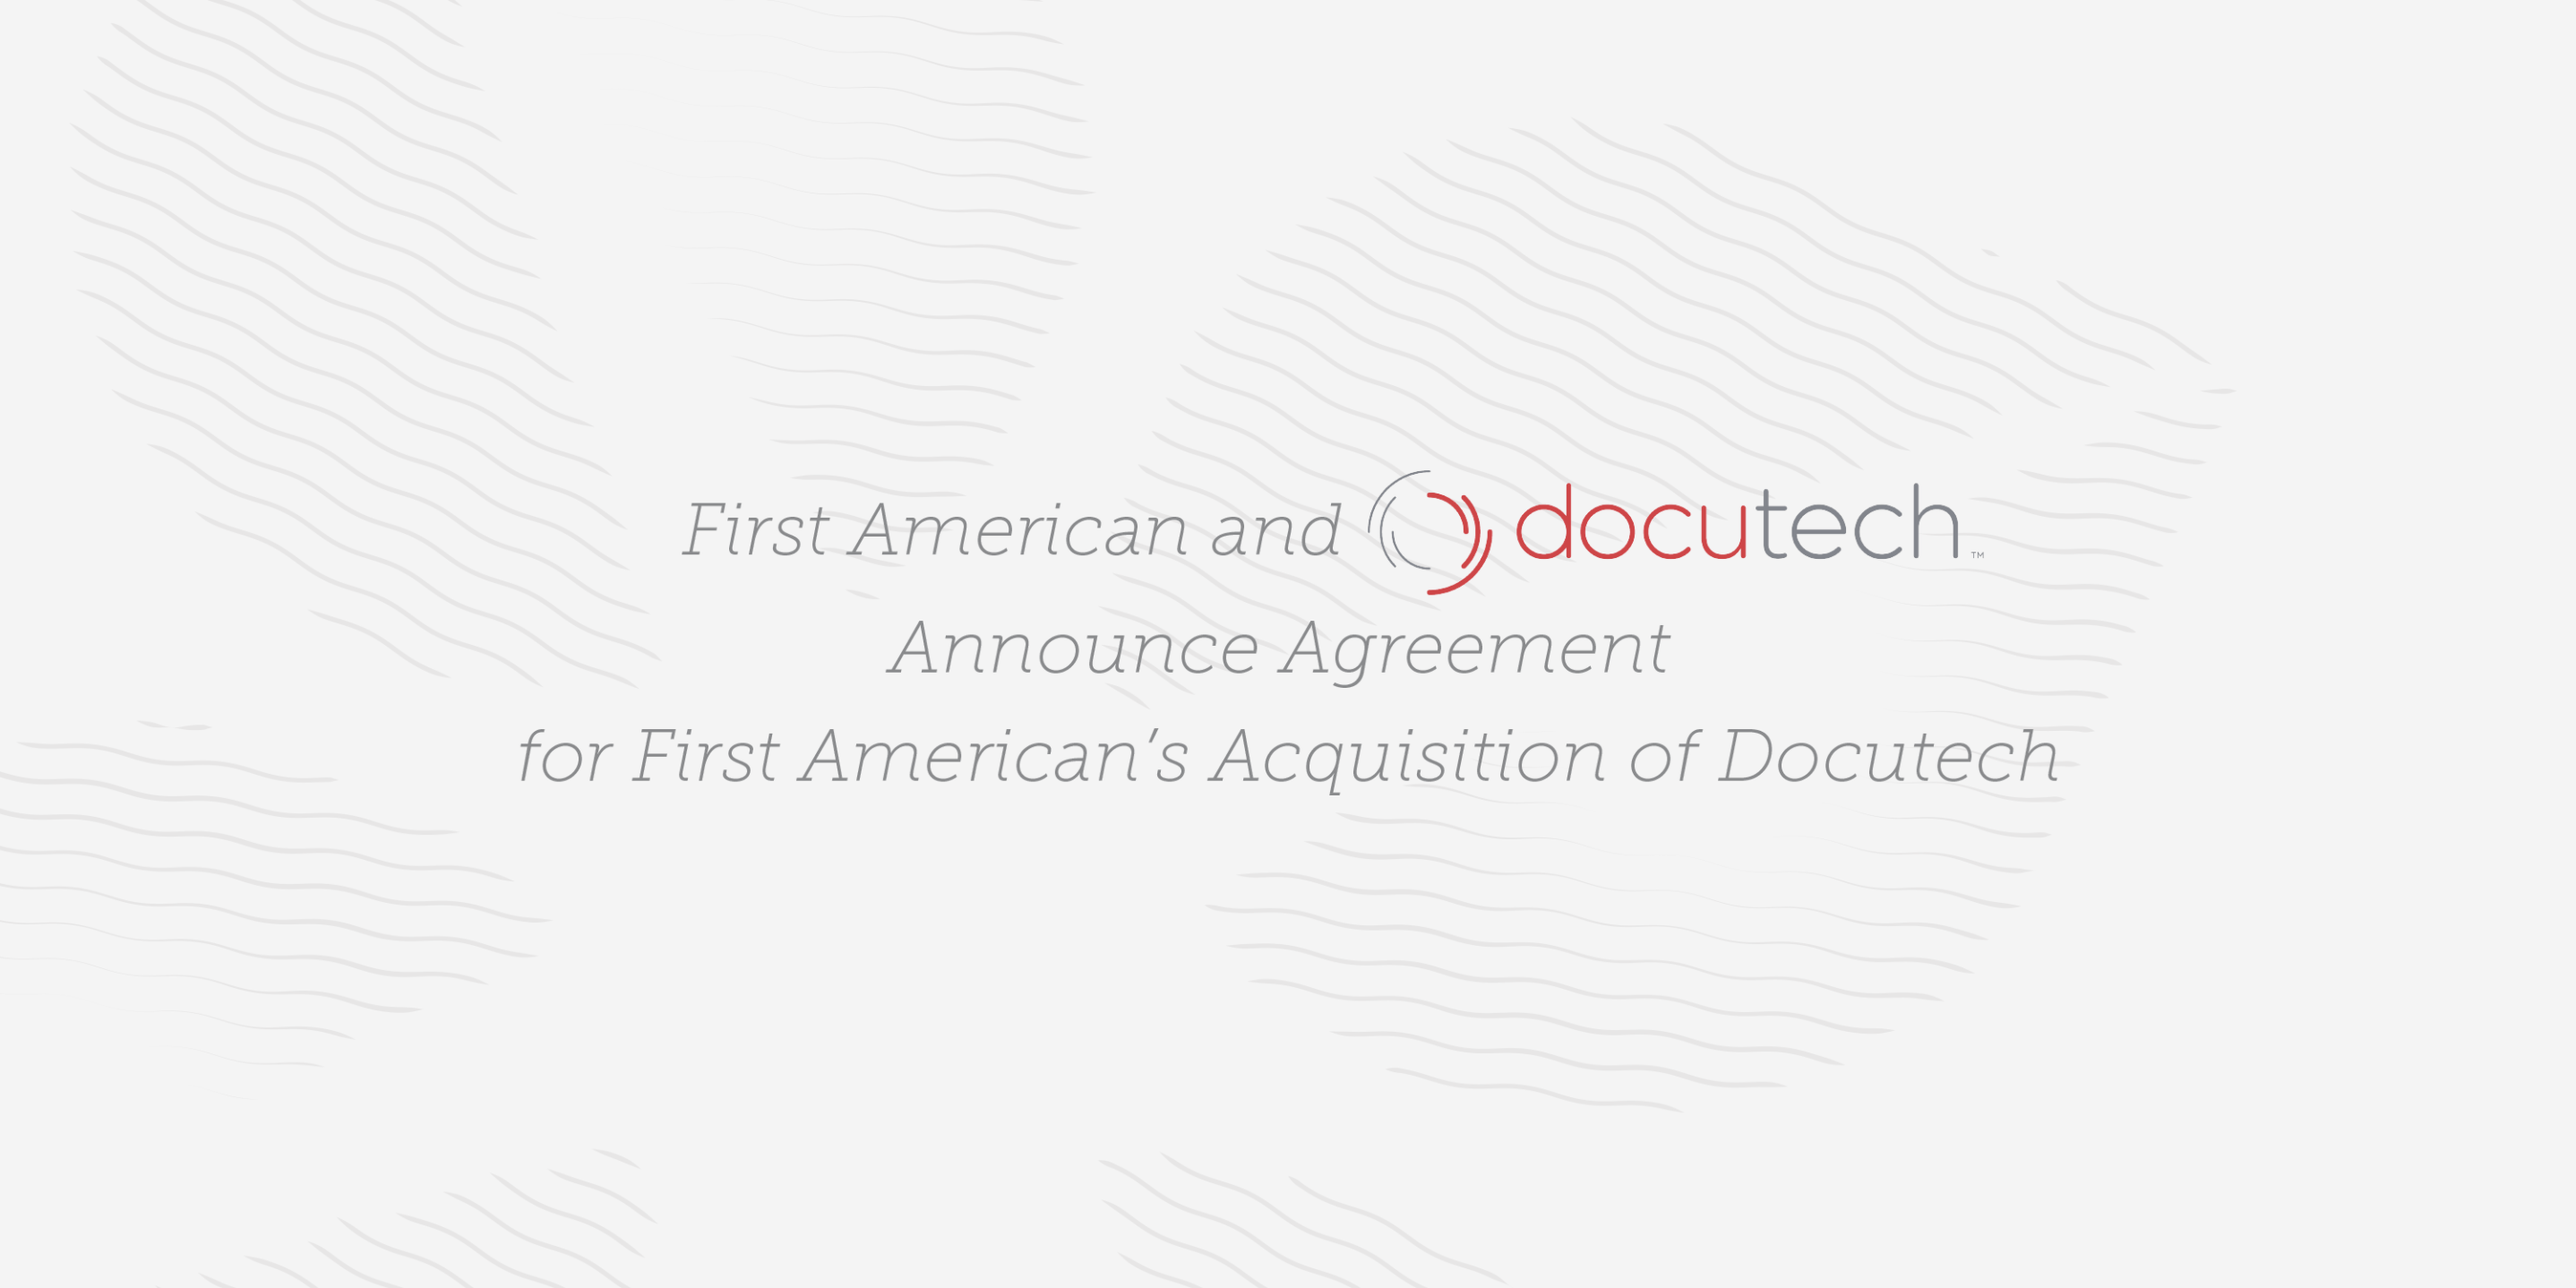 First American and Docutech, a Serent Portfolio Company, Announce Agreement for First American's Acquisition of Docutech